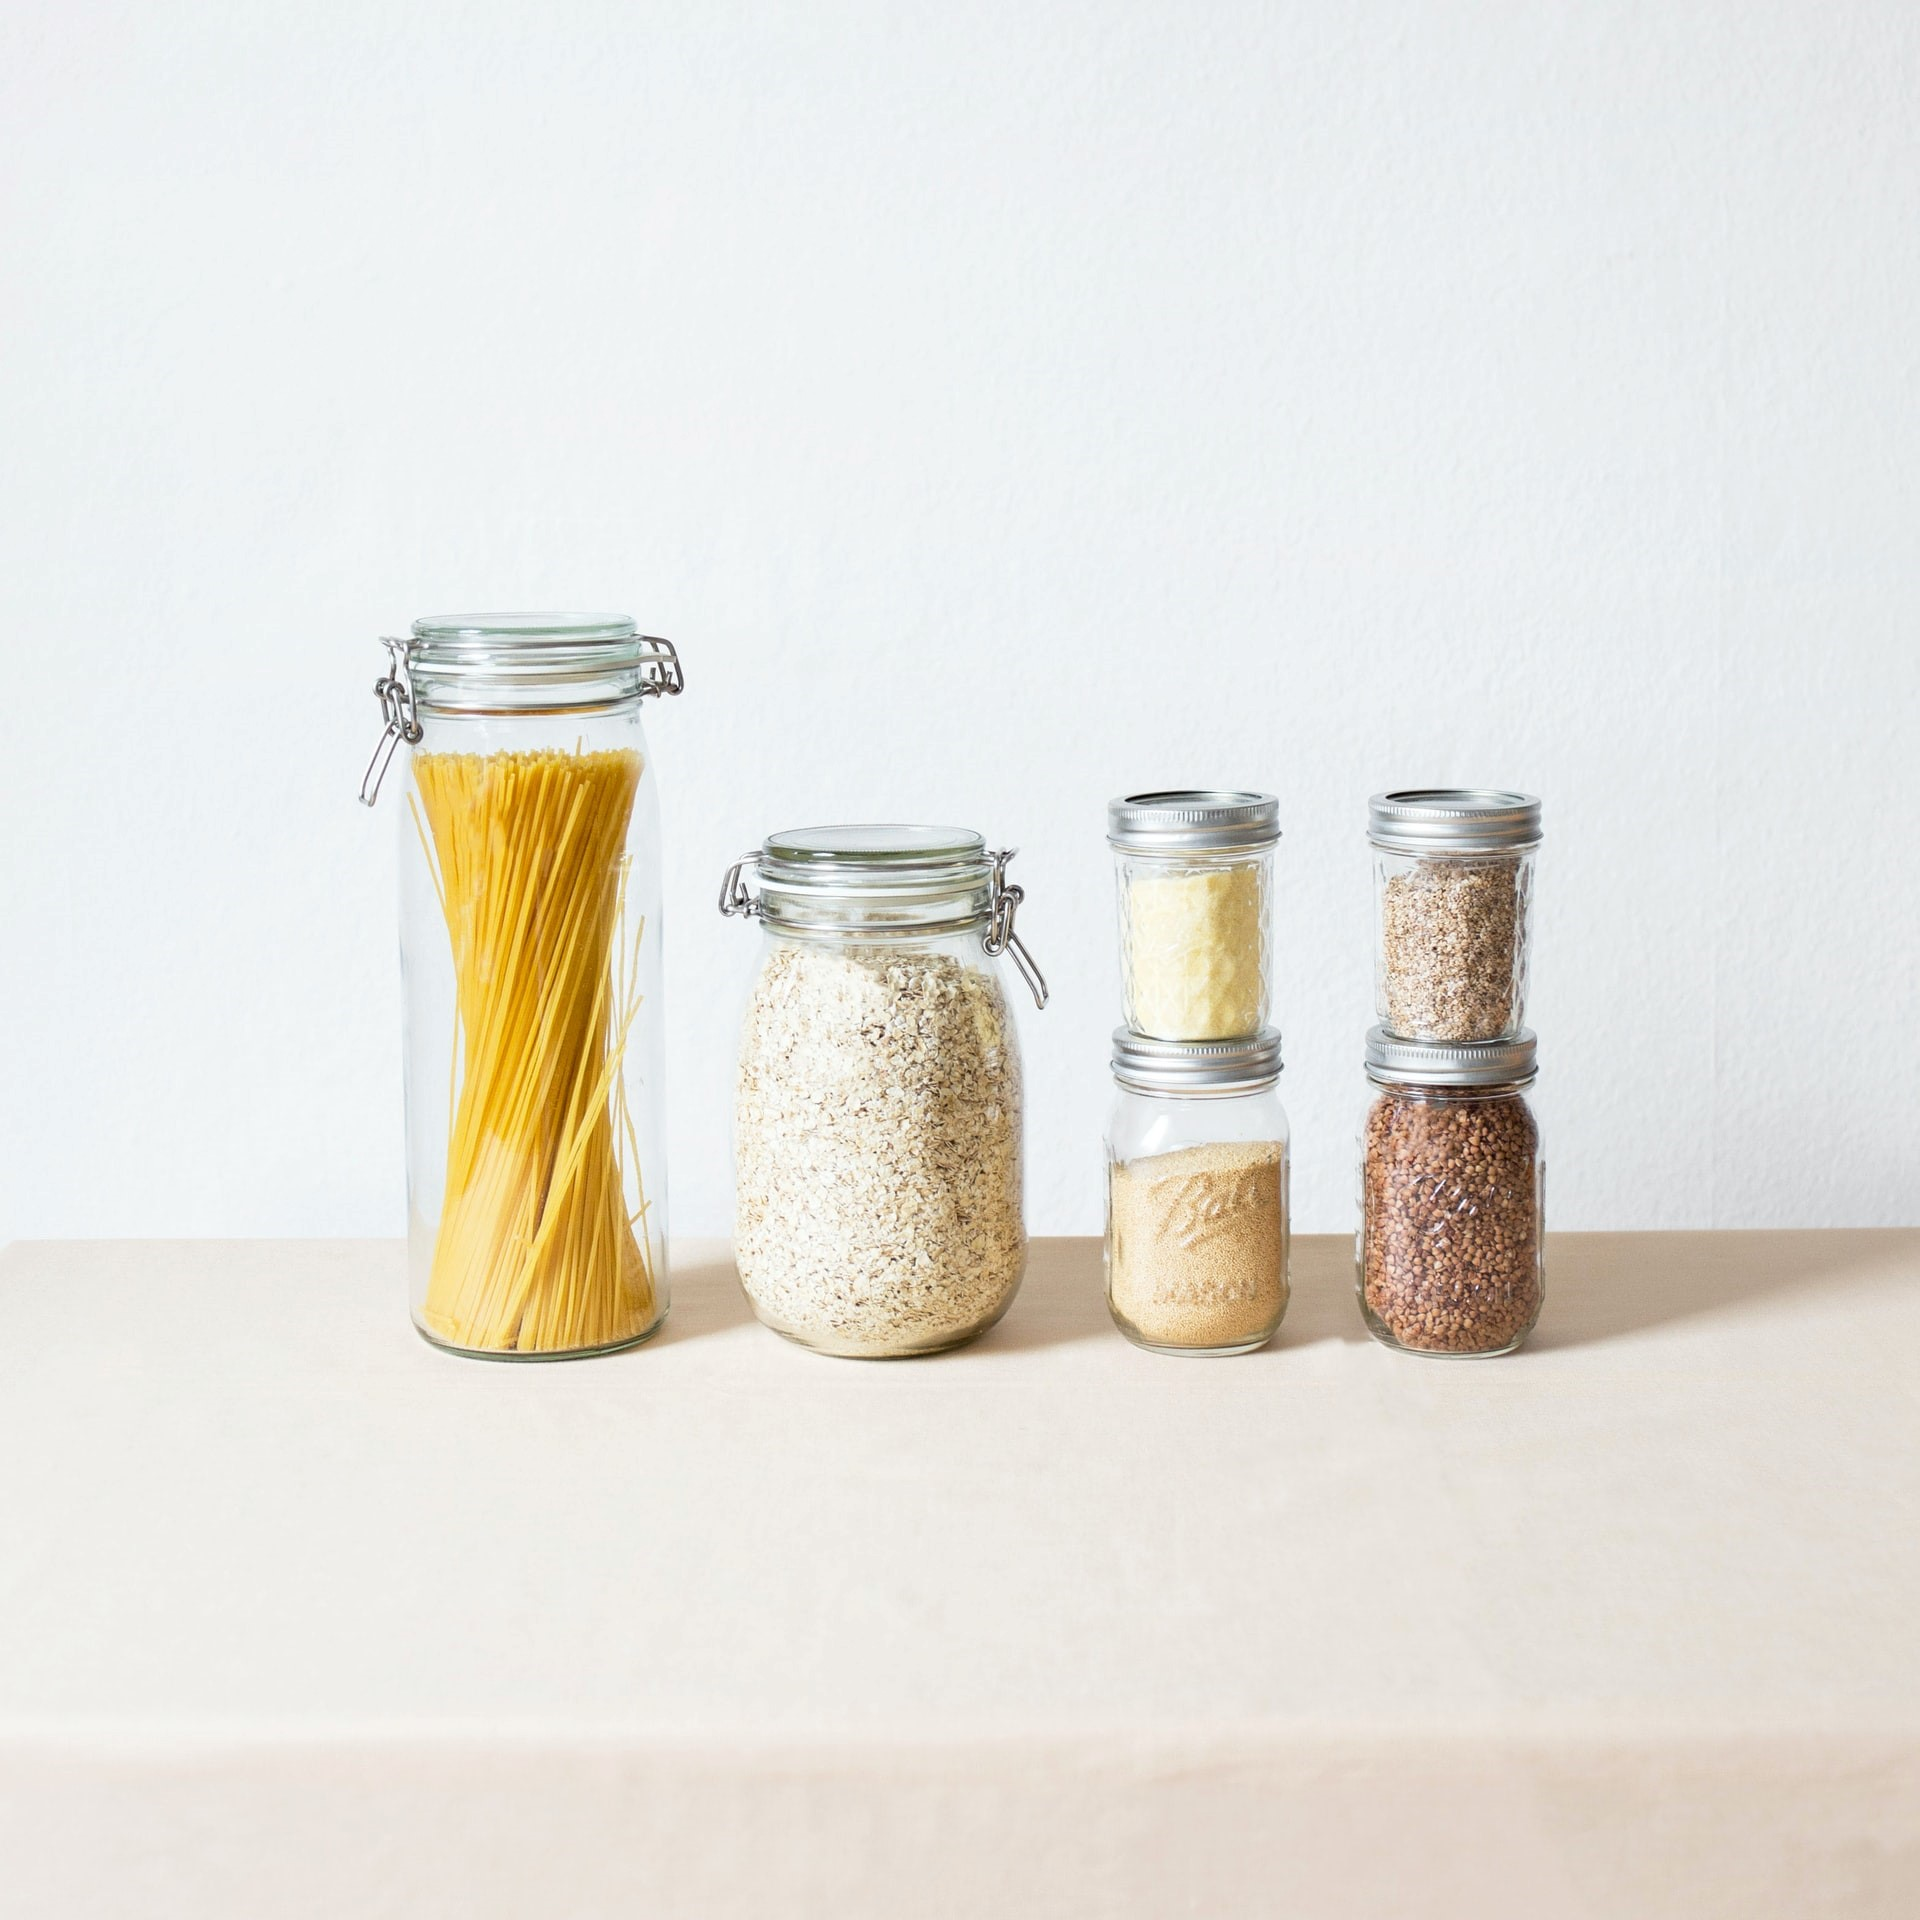 Mason jars filled with pasta, seeds and herbs.